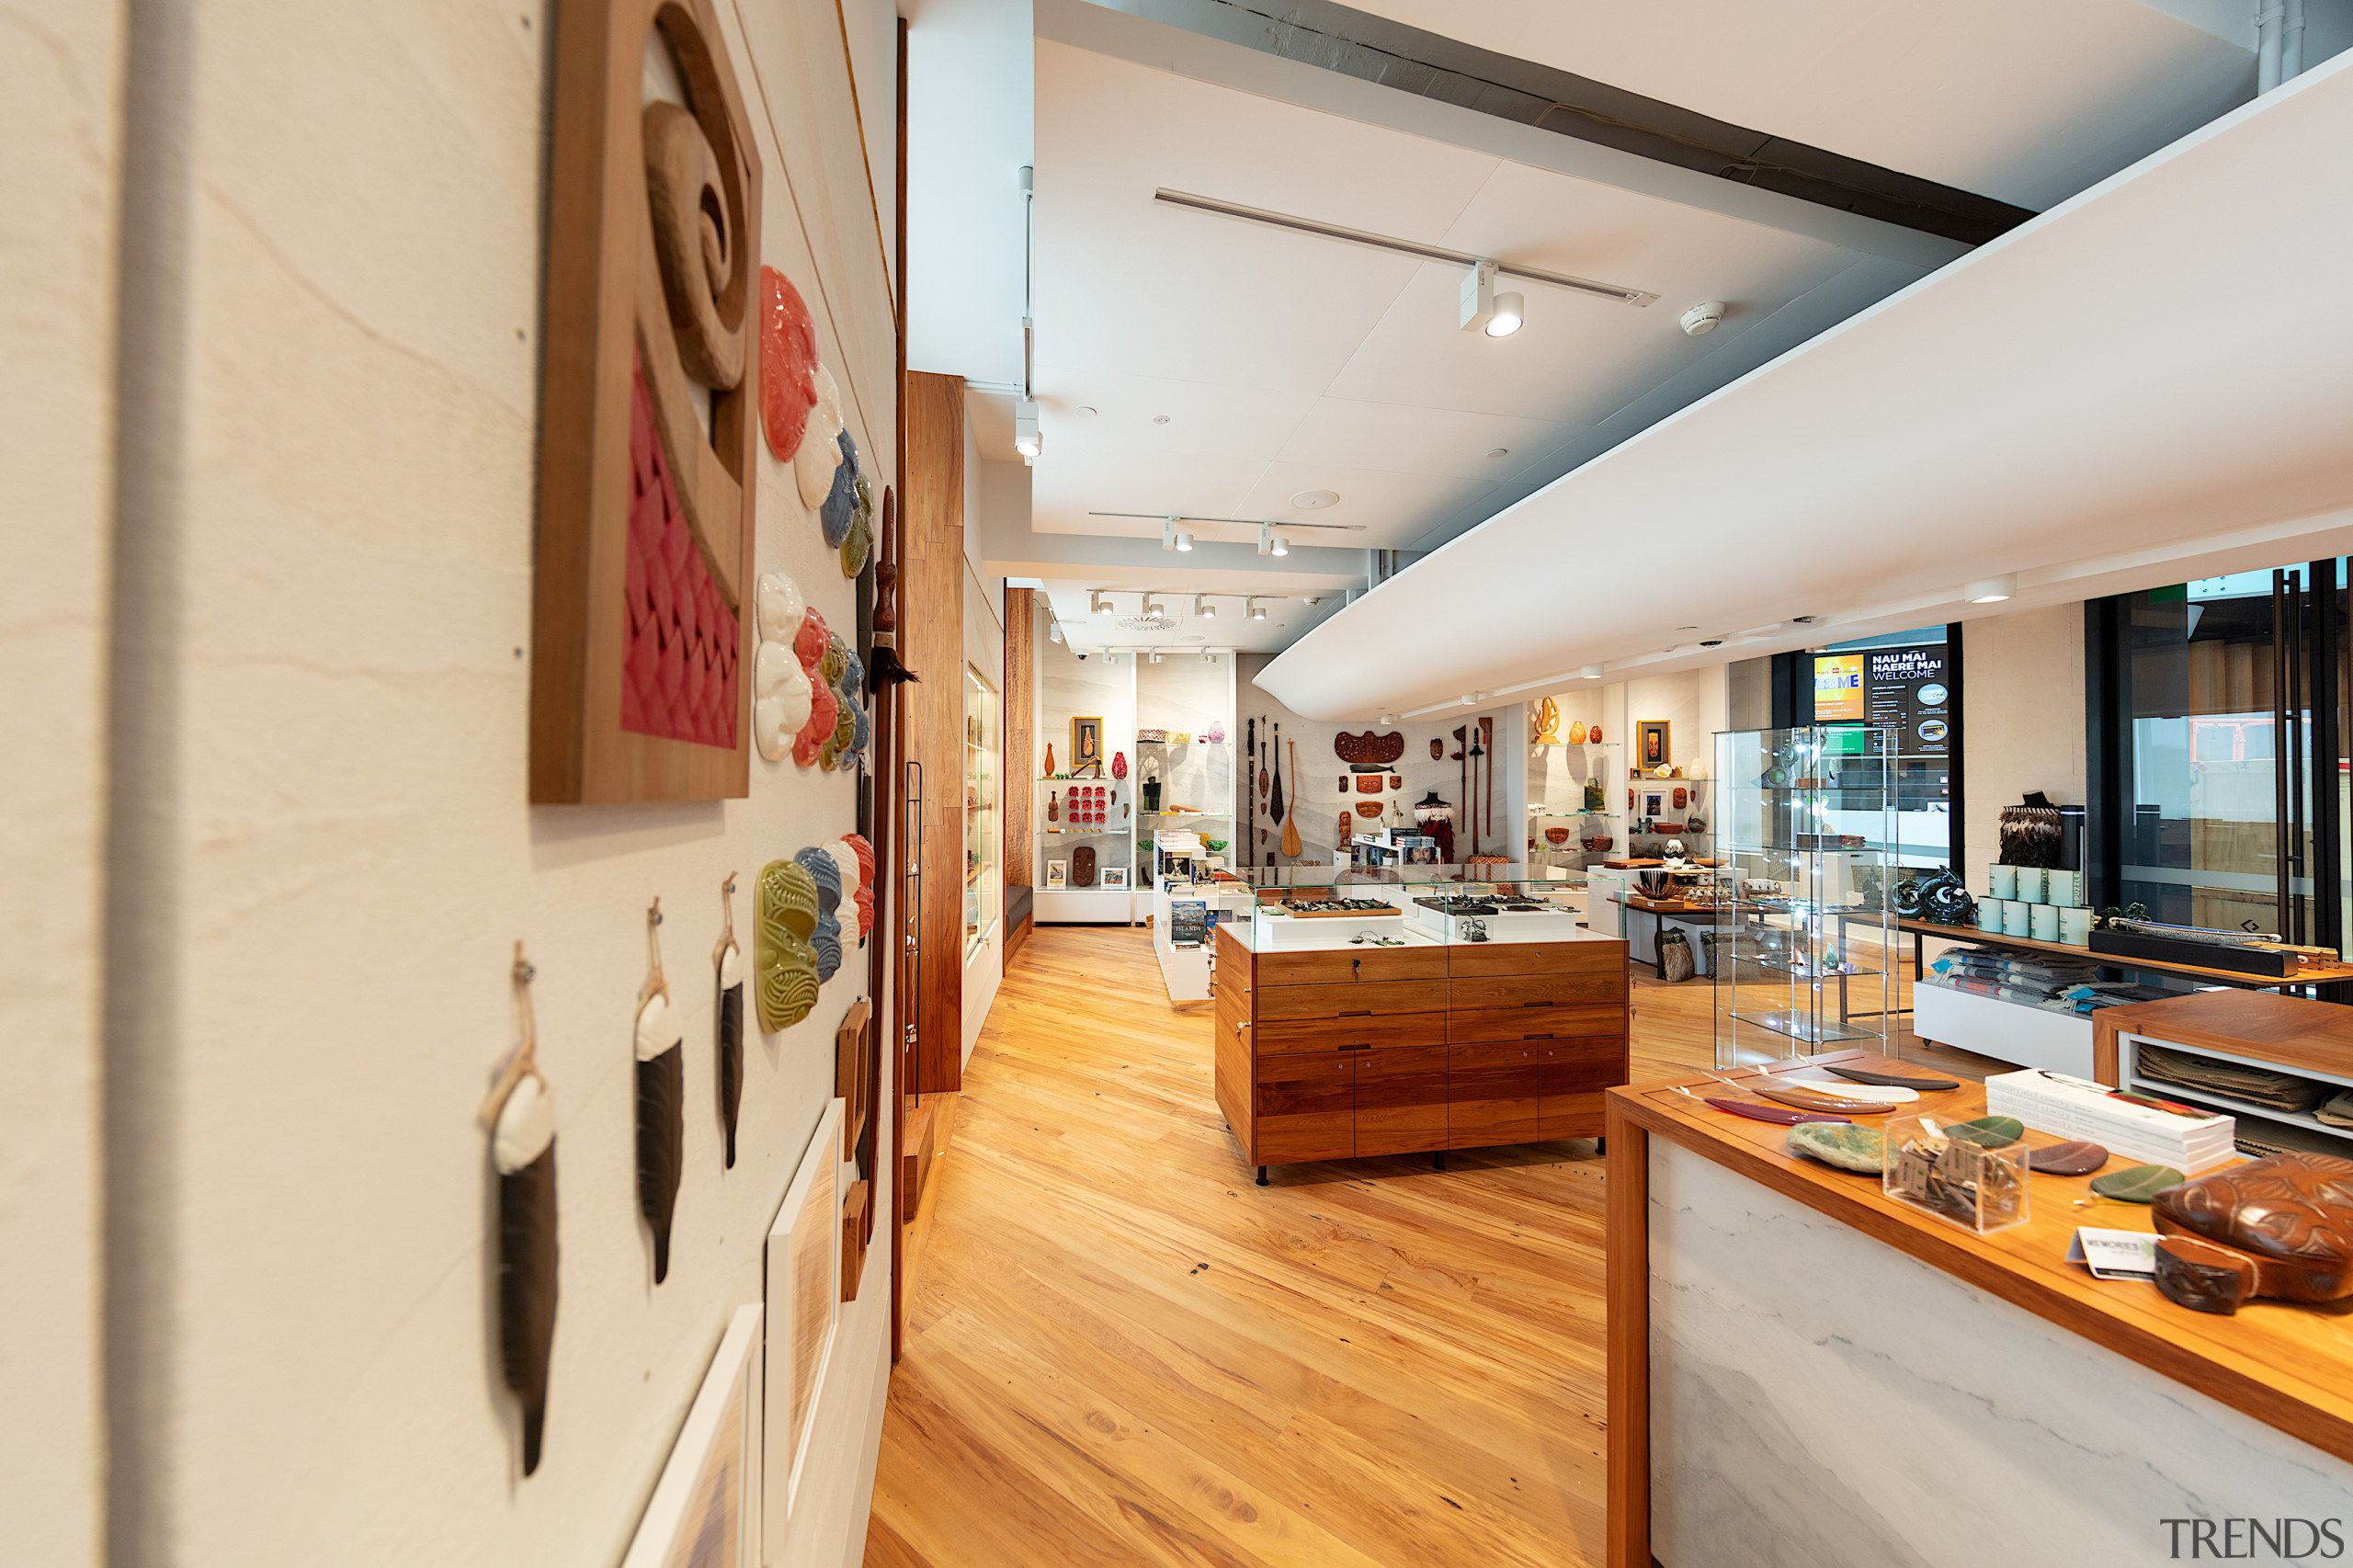 The Museum Shop has been relocated back into